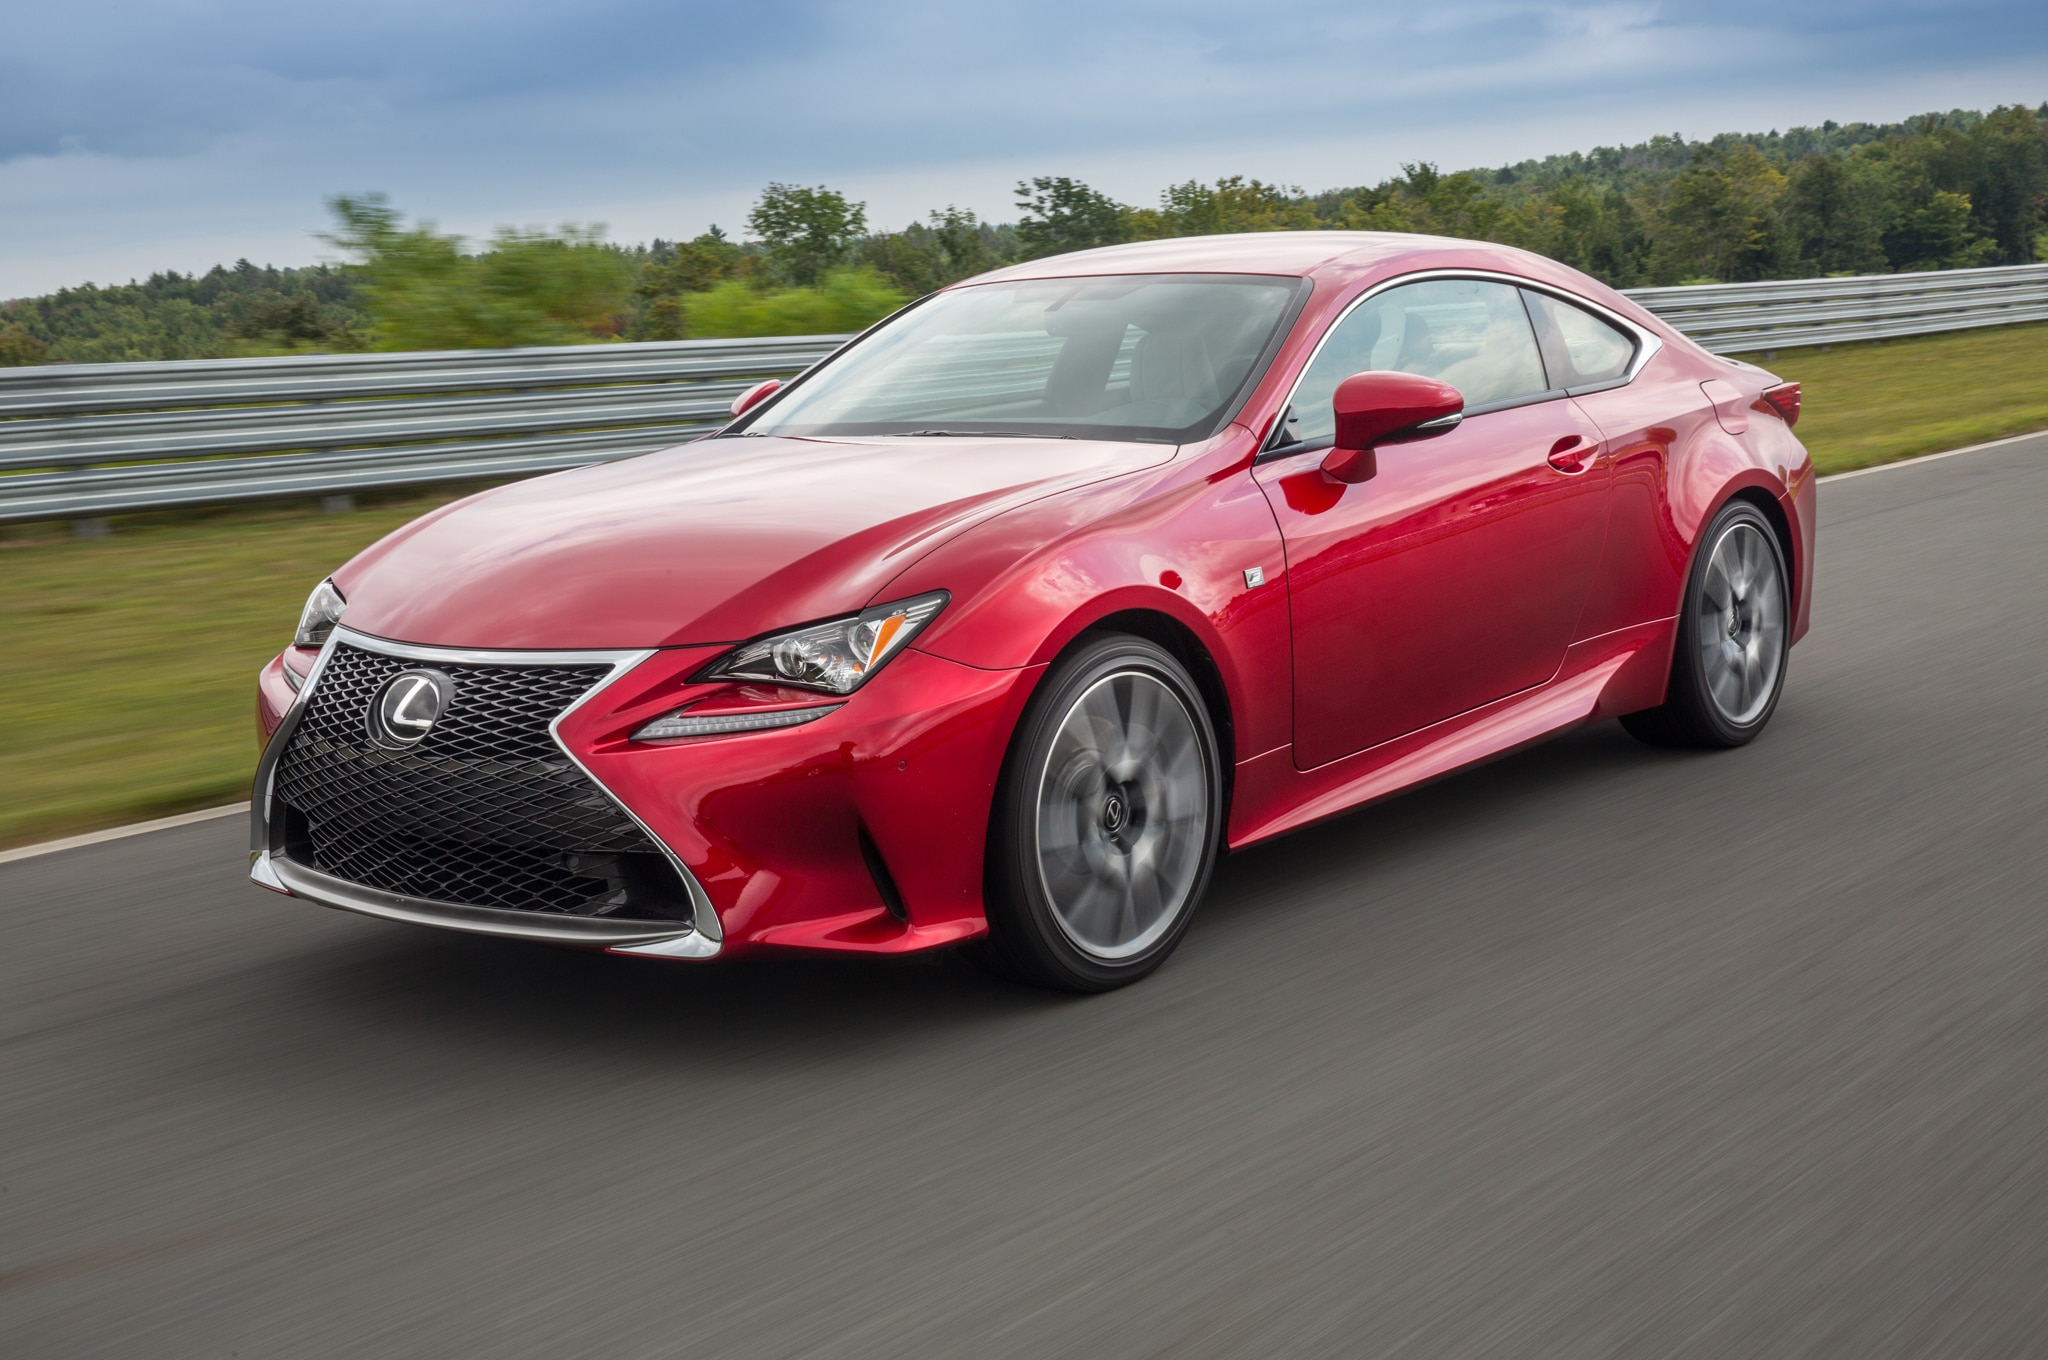 2016 is350 awd 0-60